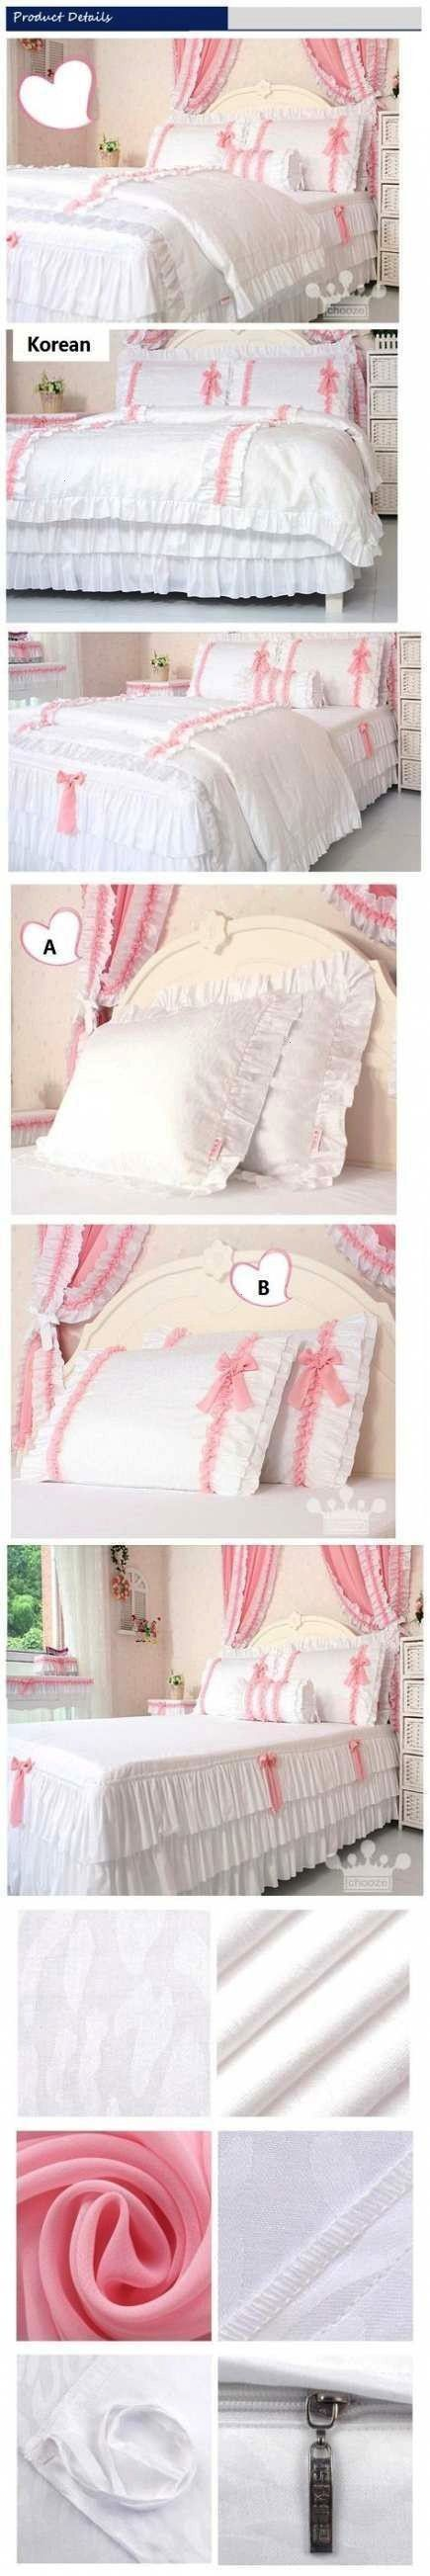 shabby chic bedding sets comforters girly 46 Ideas BedCoverideasgirls Bedding Chic bedcoverideasgirls New shabby chic bedding sets comforters girly 46 Ideas BedCoverideas...